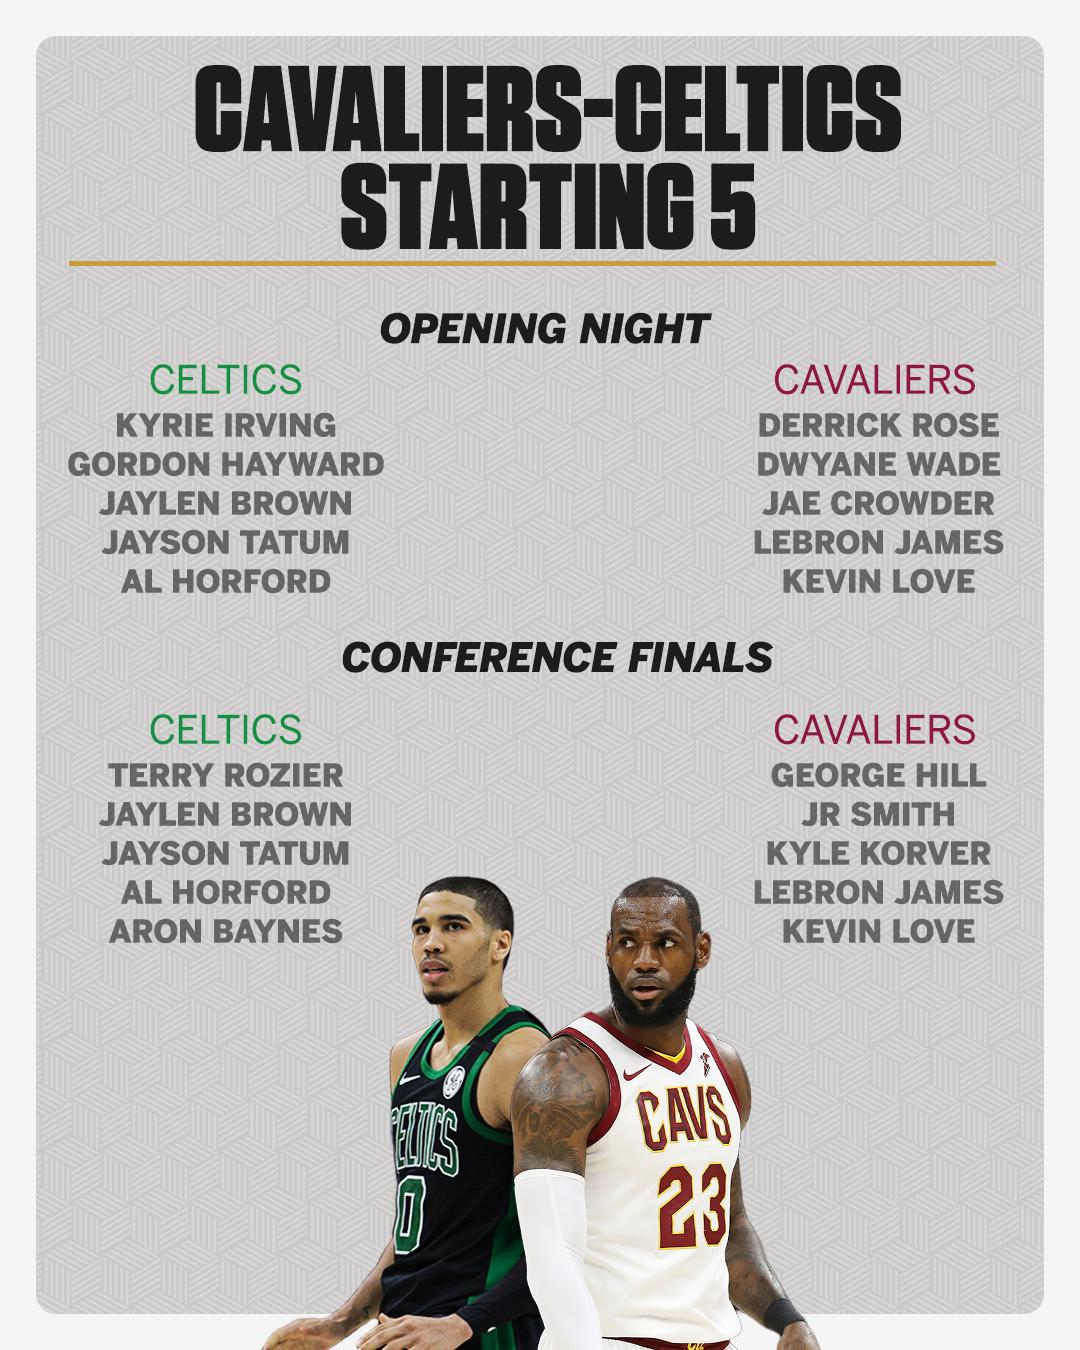 This is going to be a whole different ball game. https://t.co/IEmjWyyJ5l